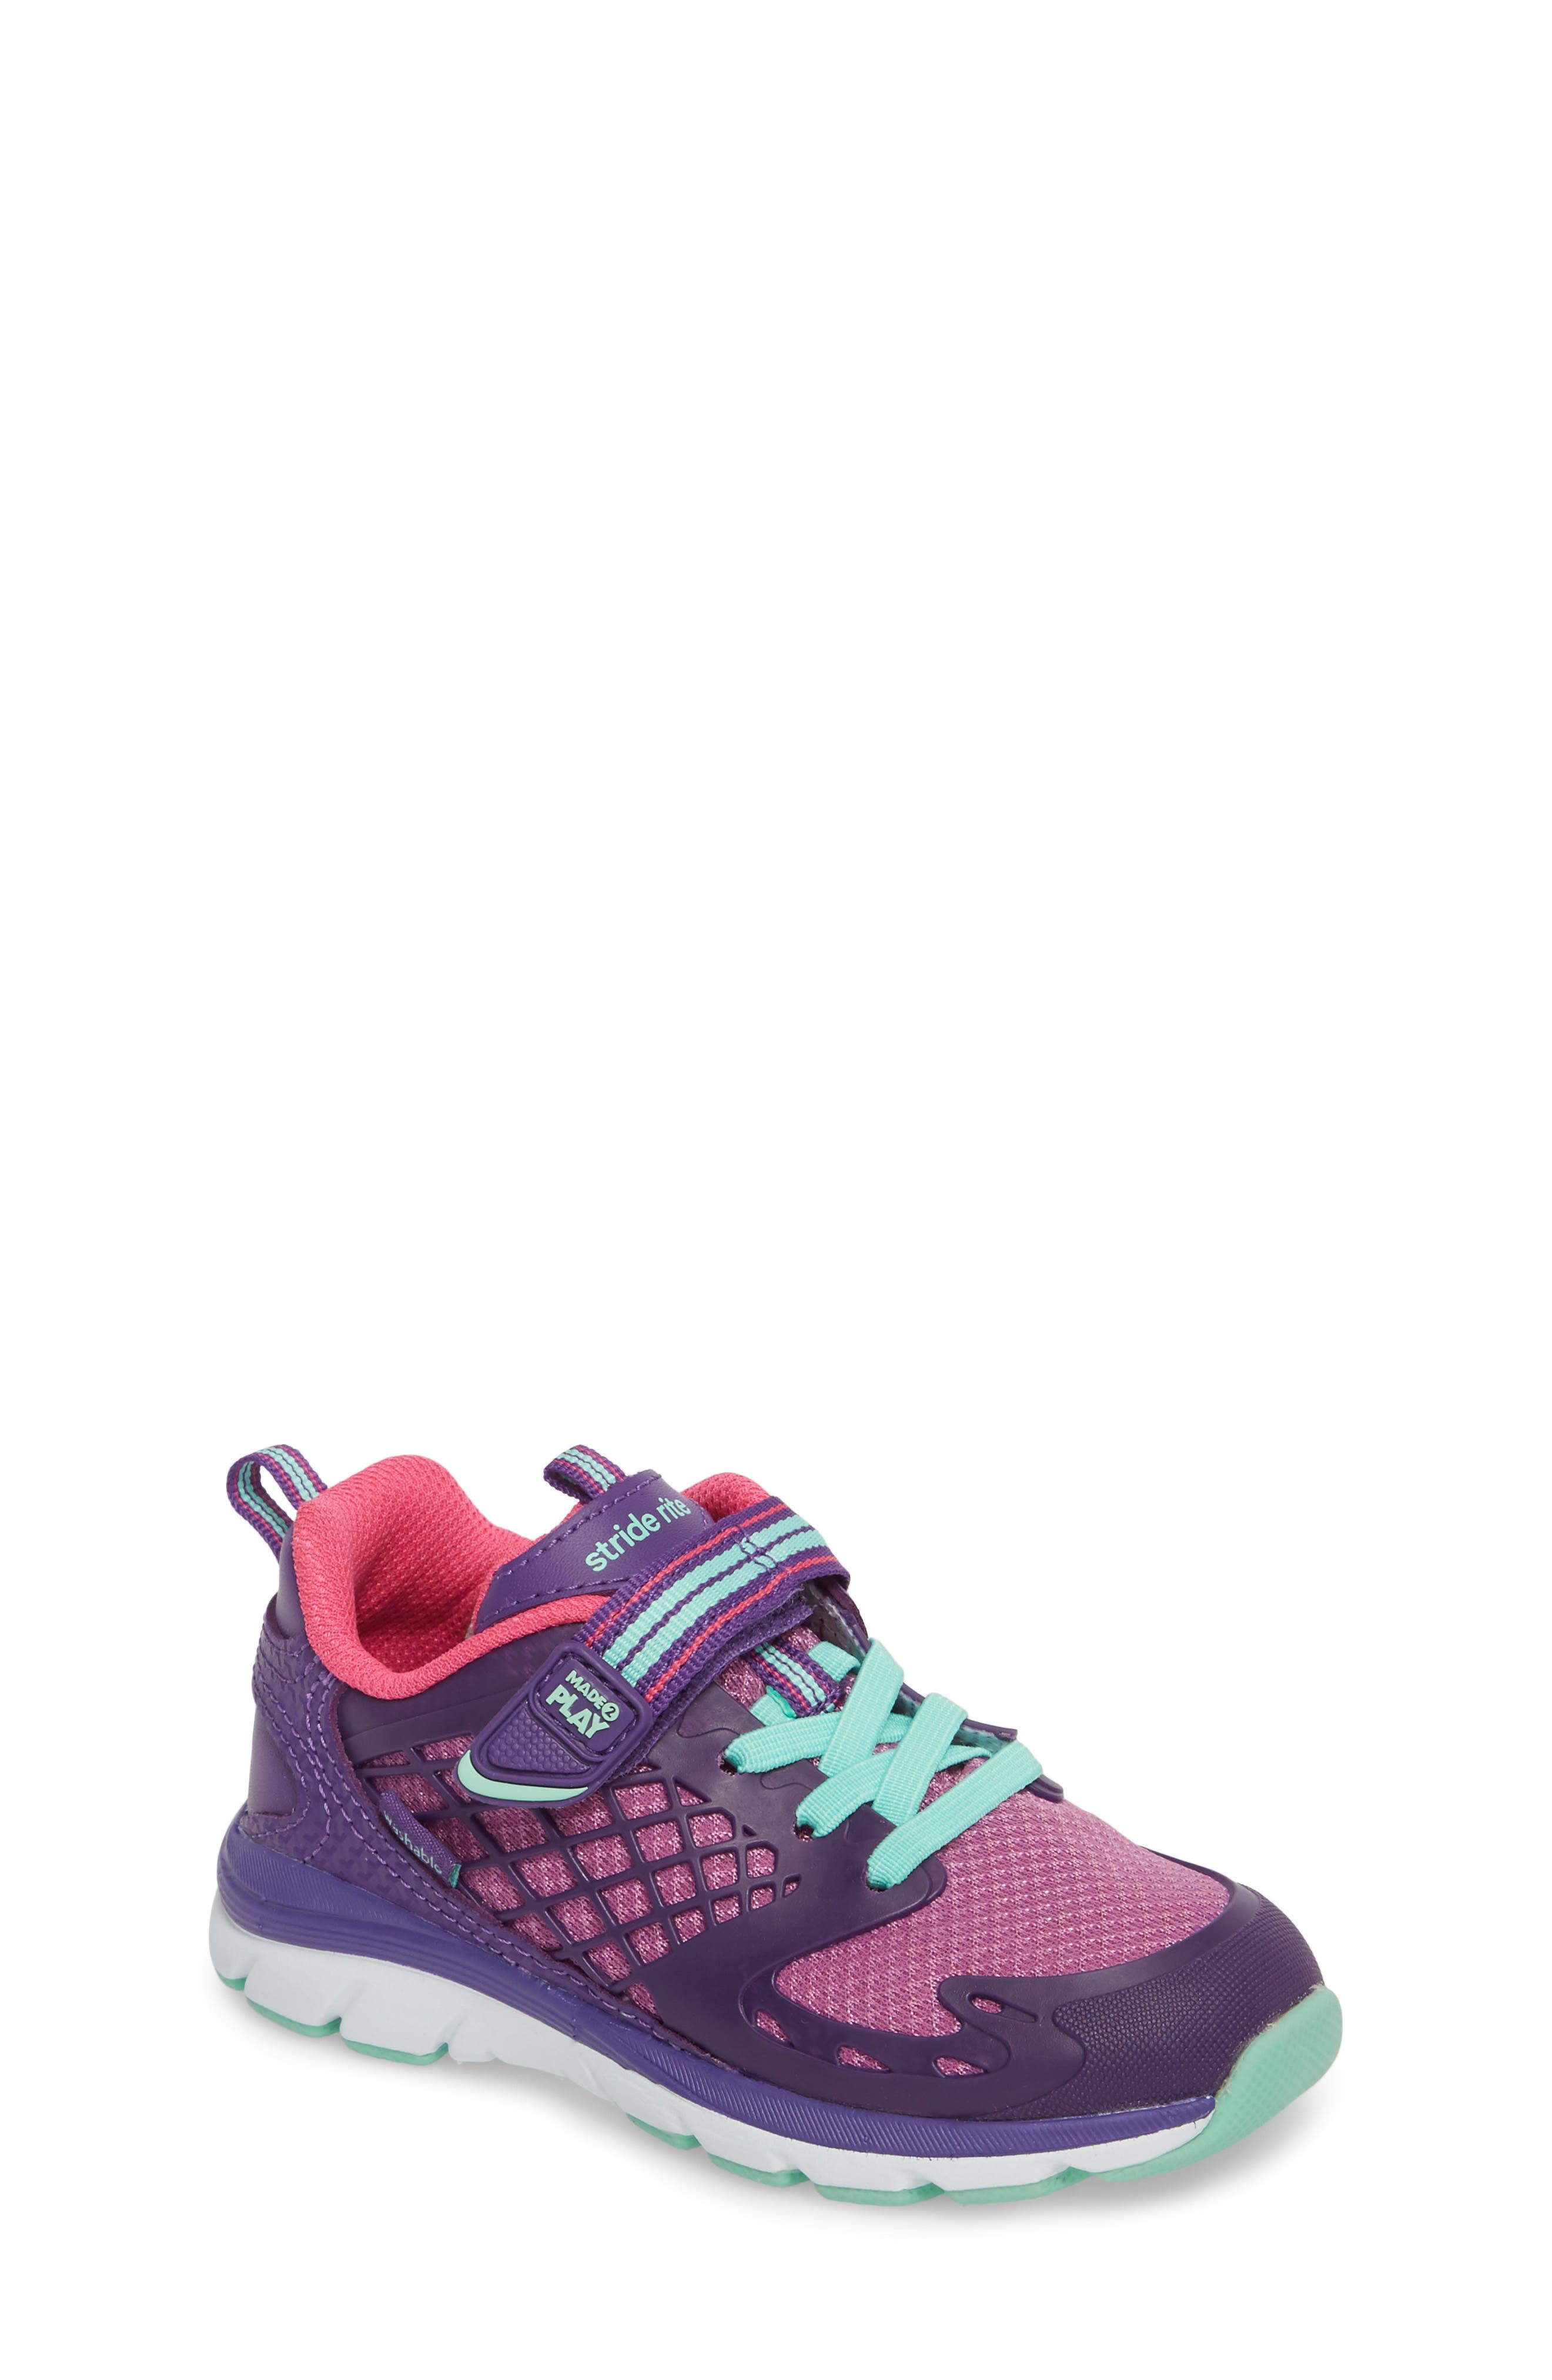 'Made2Play<sup>®</sup> Cannan Lace' Sneaker,                         Main,                         color, Purple Leather/ Textile